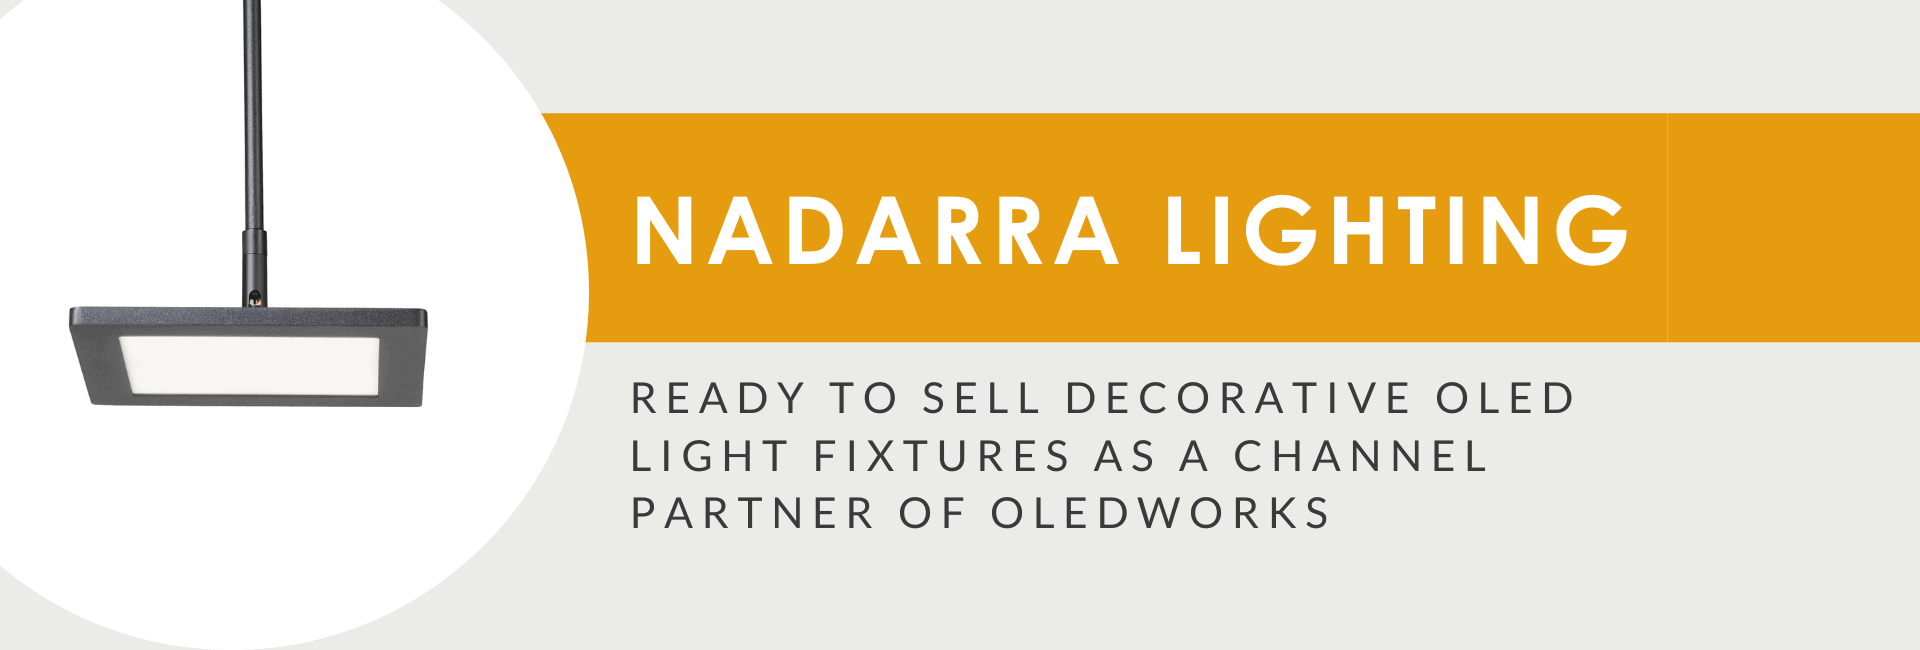 Rochester-based Nadarra Lighting, Ready to Sell Decorative OLED Light Fixtures as a Channel Partner of OLEDWorks